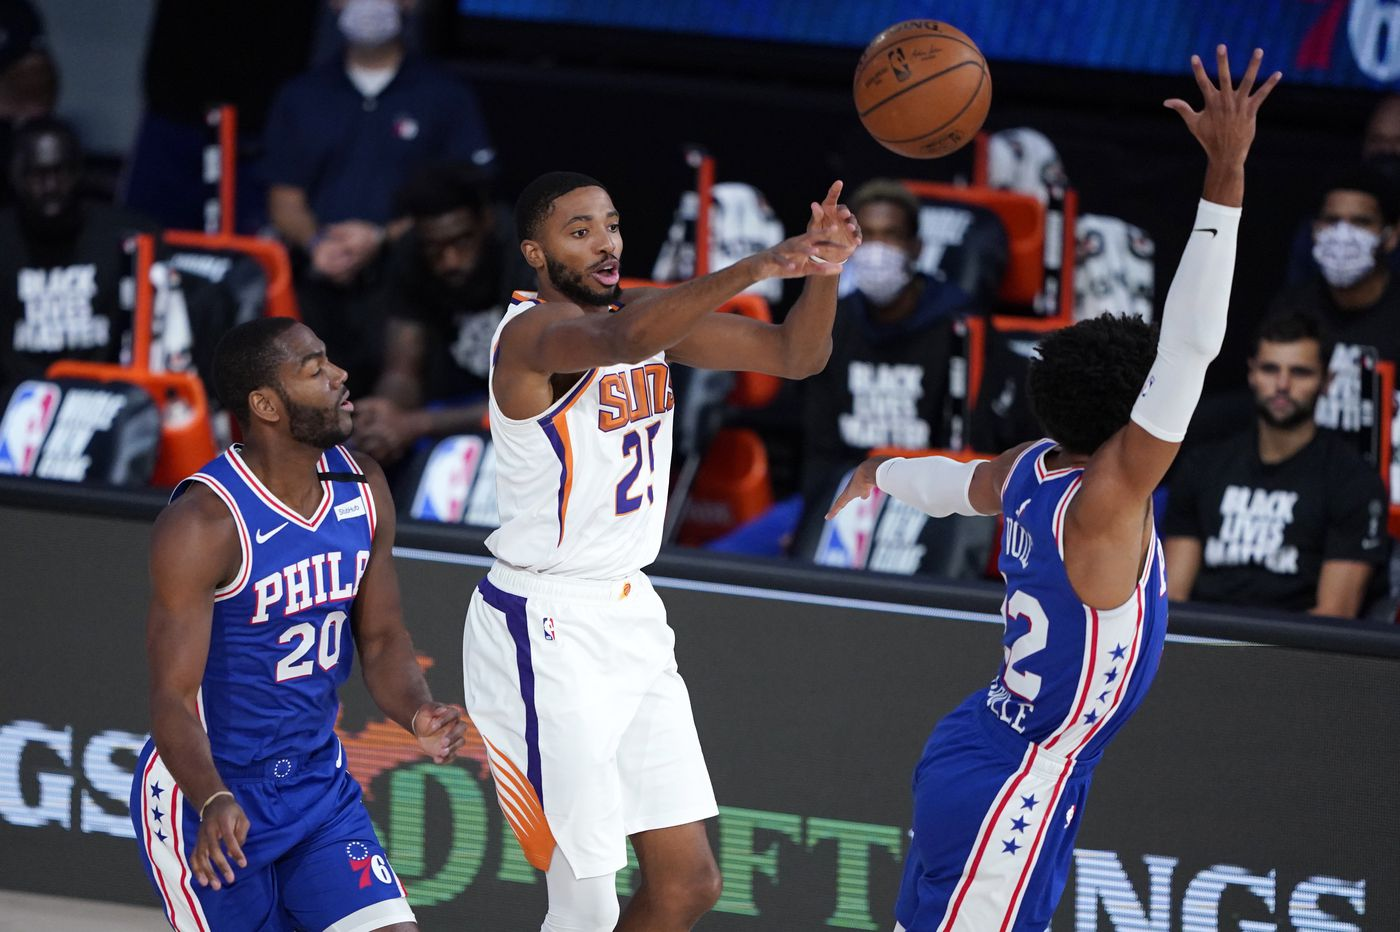 Undermanned Sixers fall, 130-117, to Phoenix Suns as Devin Booker scores 35 points for fourth time in five games